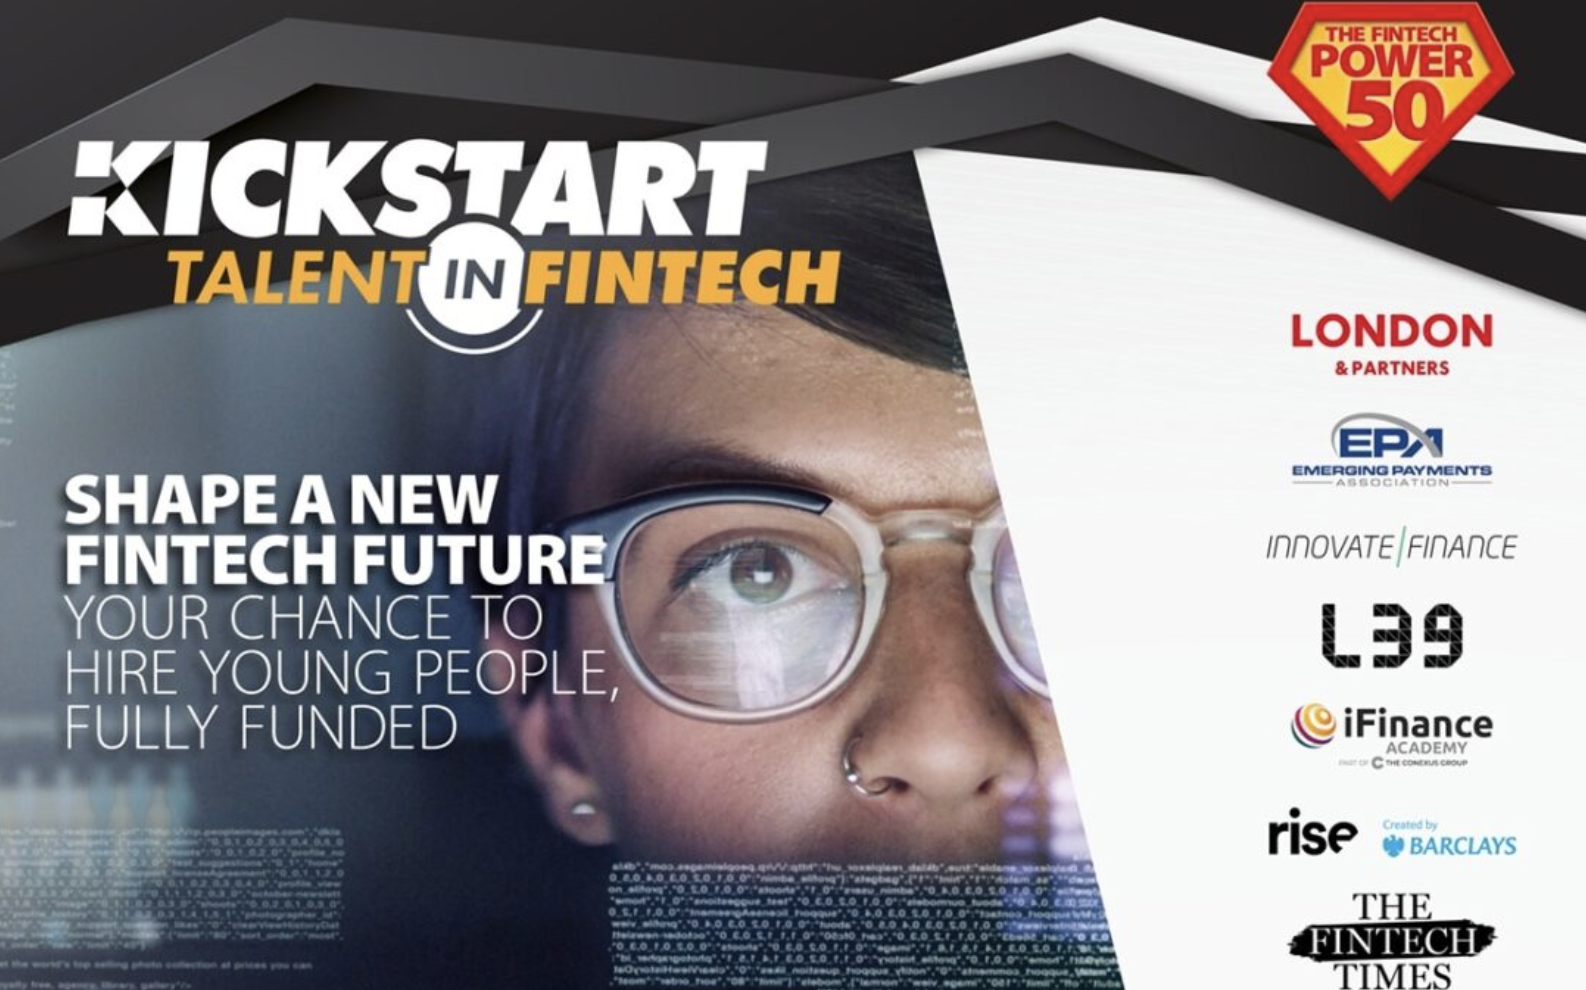 The FinTech Power 50 launches the FinTech KICKSTART scheme to provide employment opportunities for young people